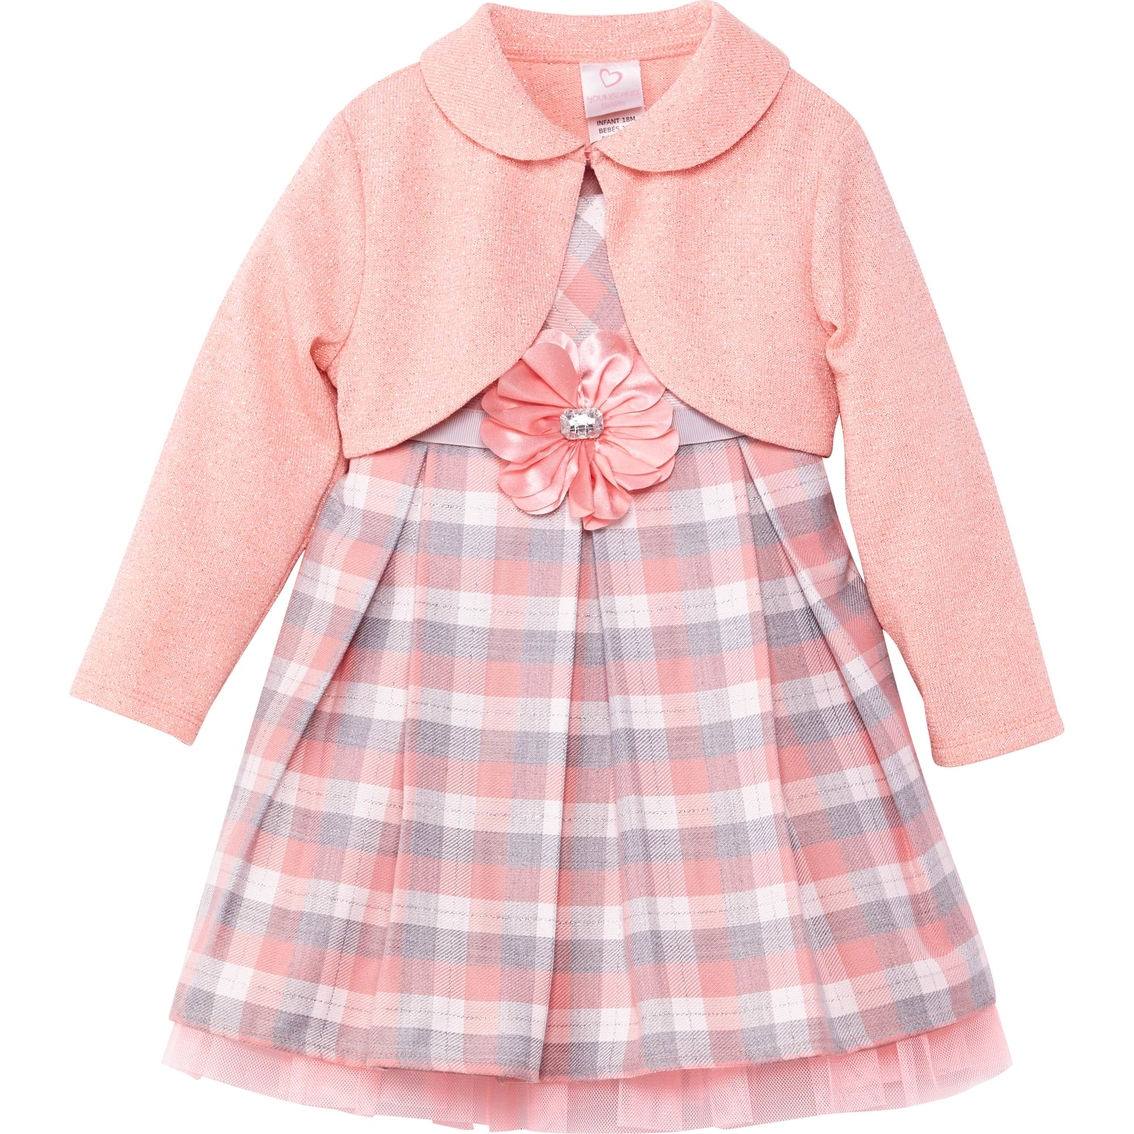 3b2cc33b2560d Youngland Infant Girls 2-pc. Dress With Knit Shrug | Baby Girl 0-24 ...